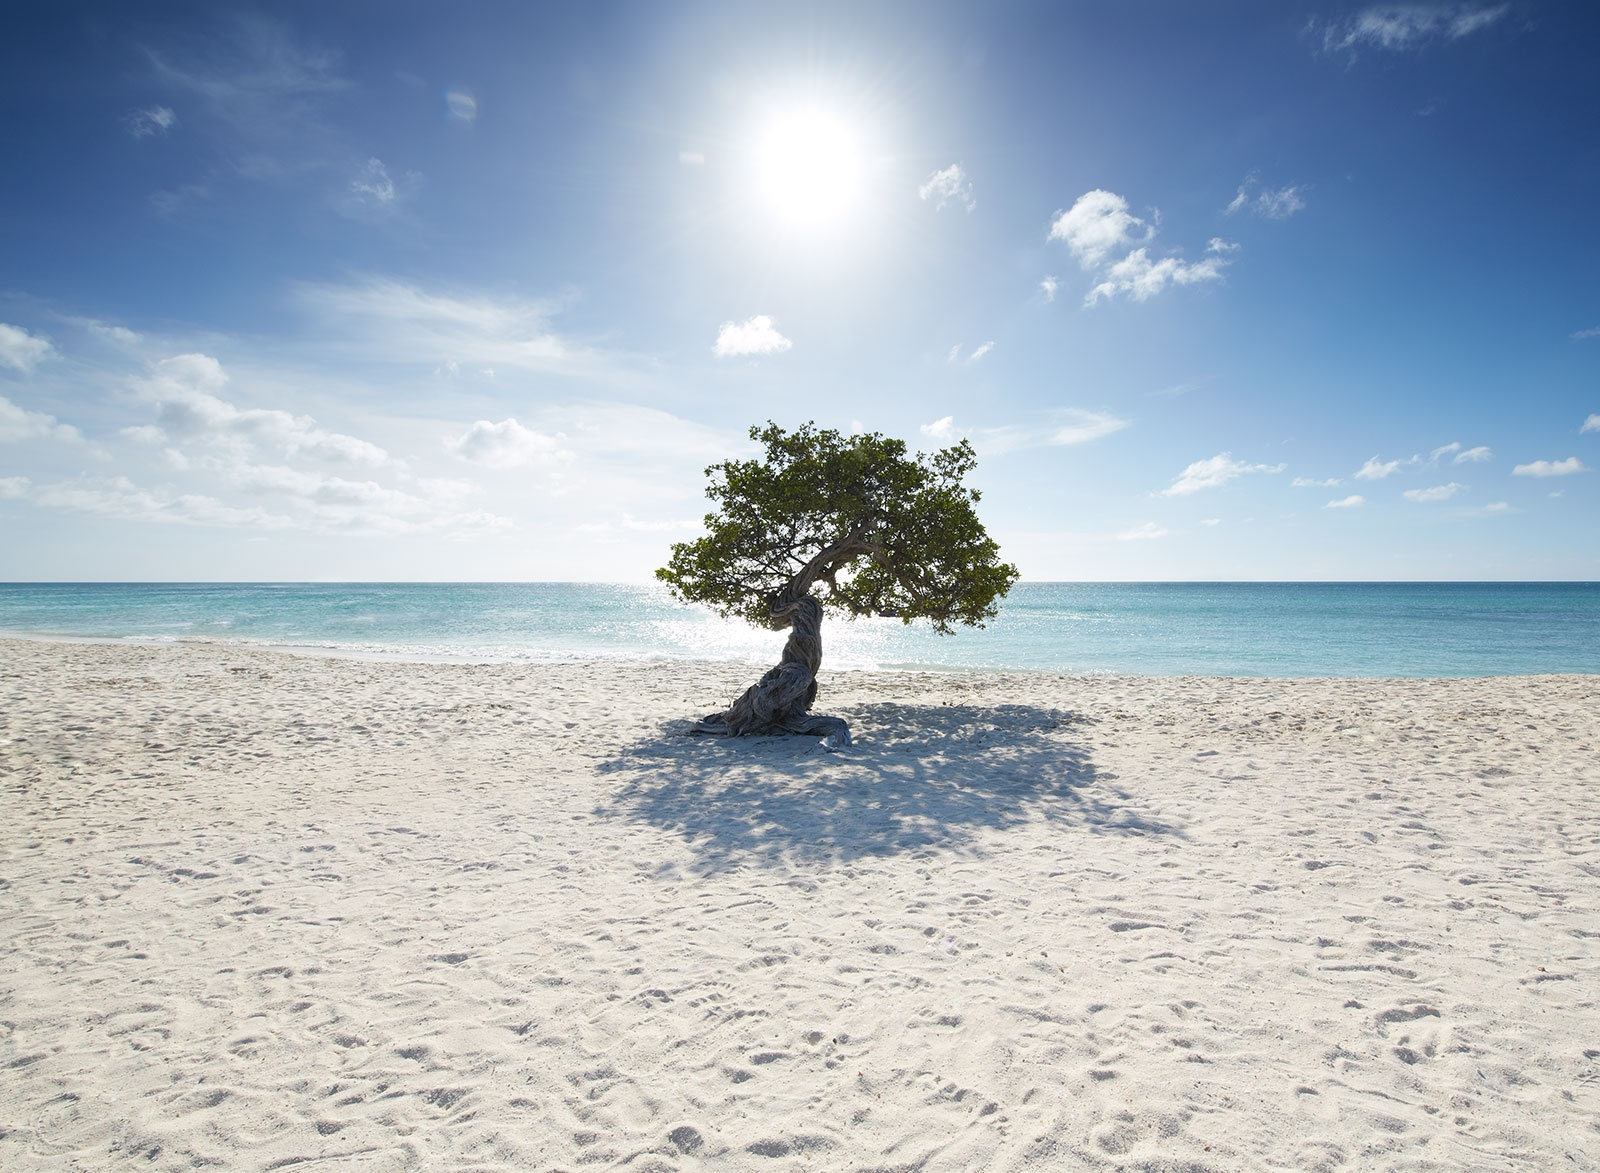 201503-connect-aruba-highres-2-trees